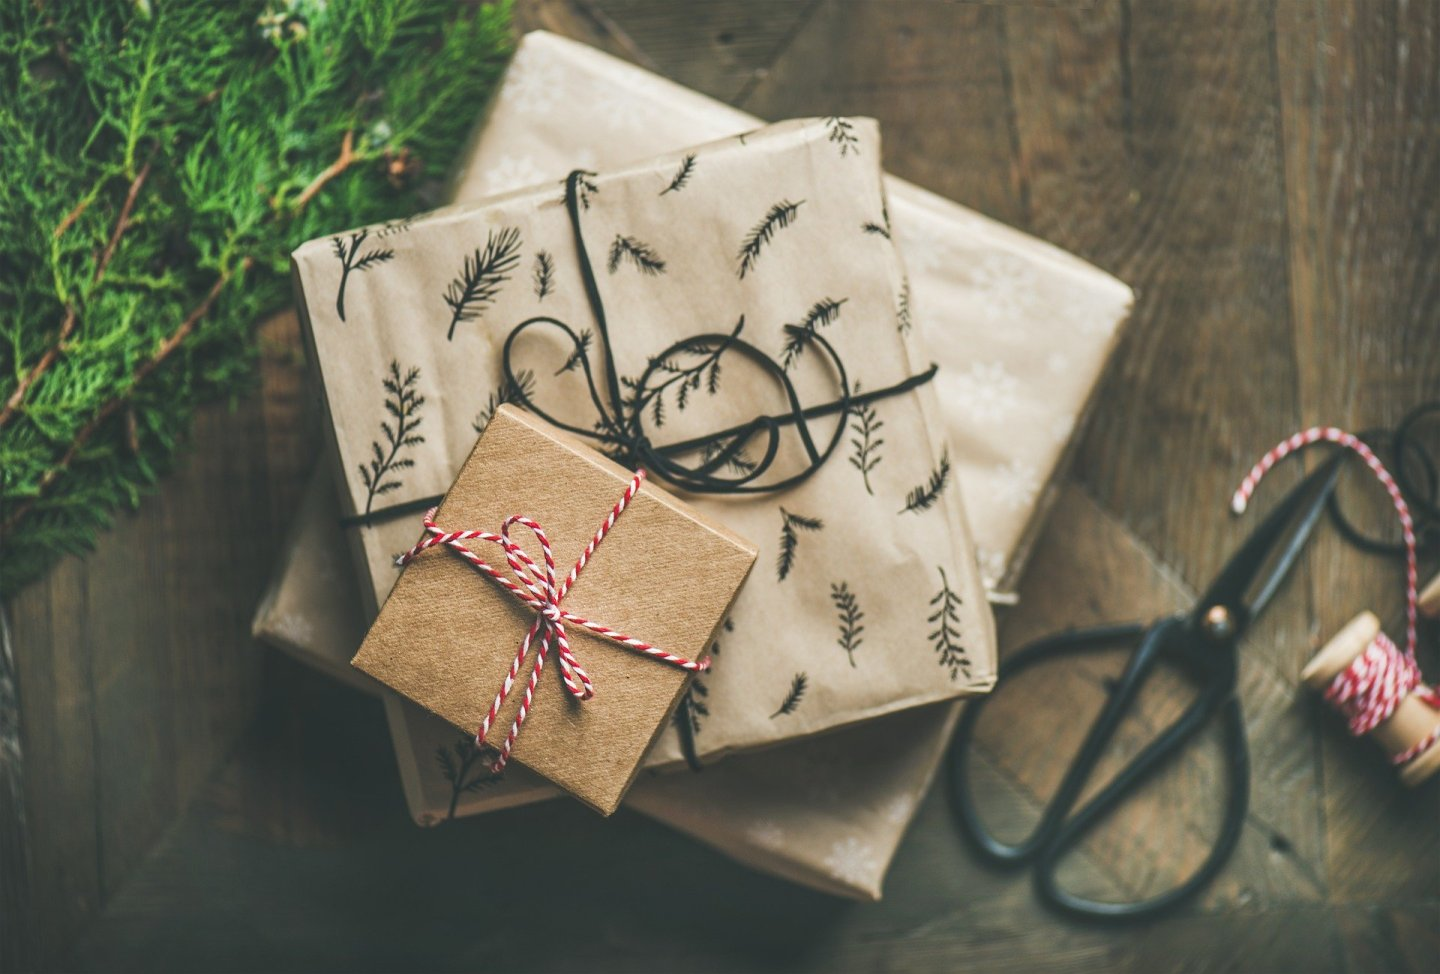 Gift Giving: The Lost Art of Giving Great Presents